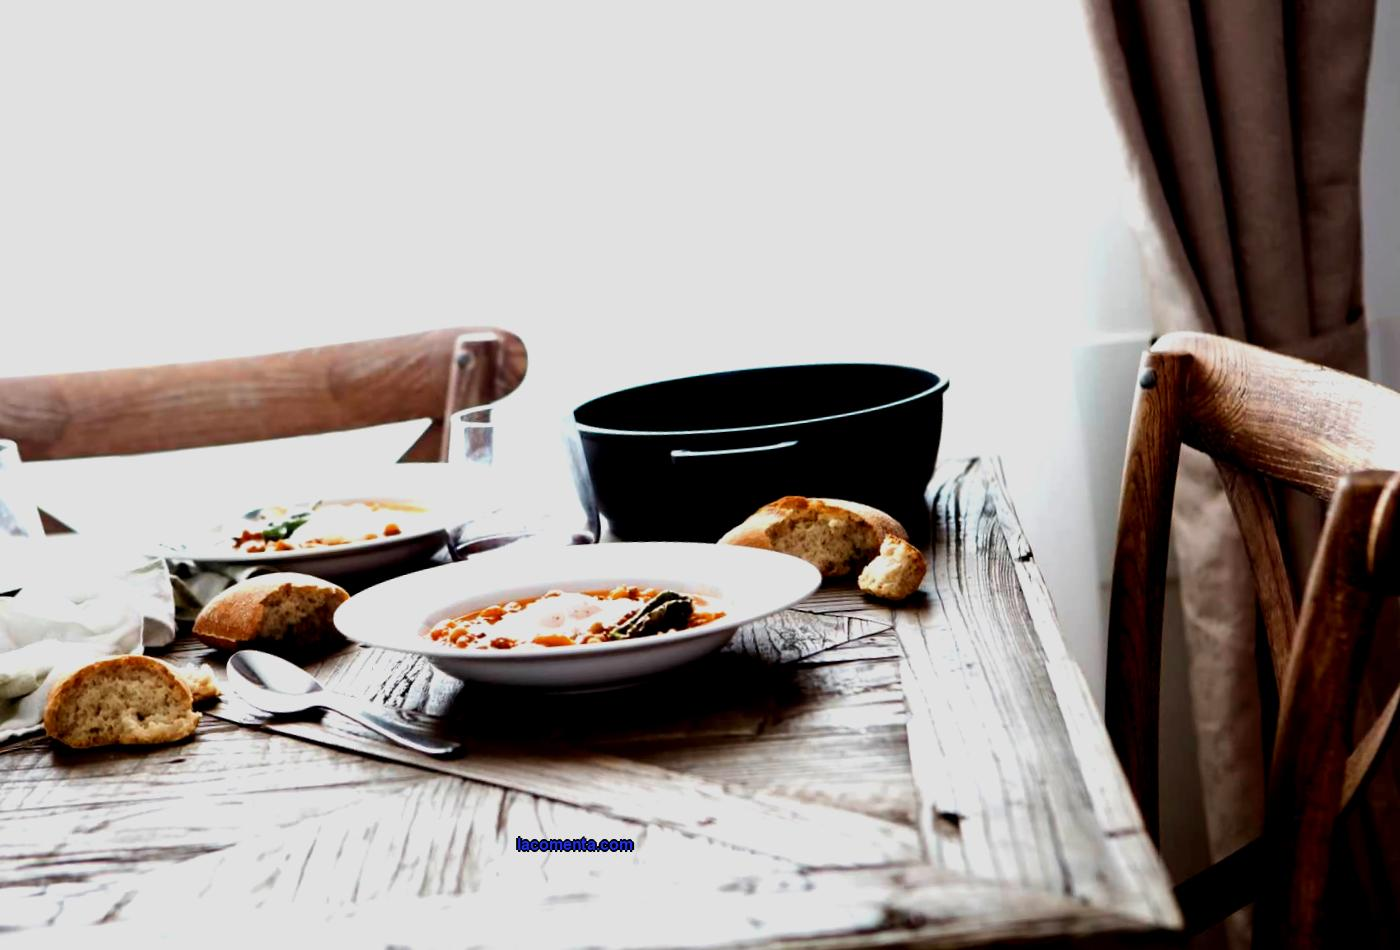 Sit down and eat normally: food tourism for beginners